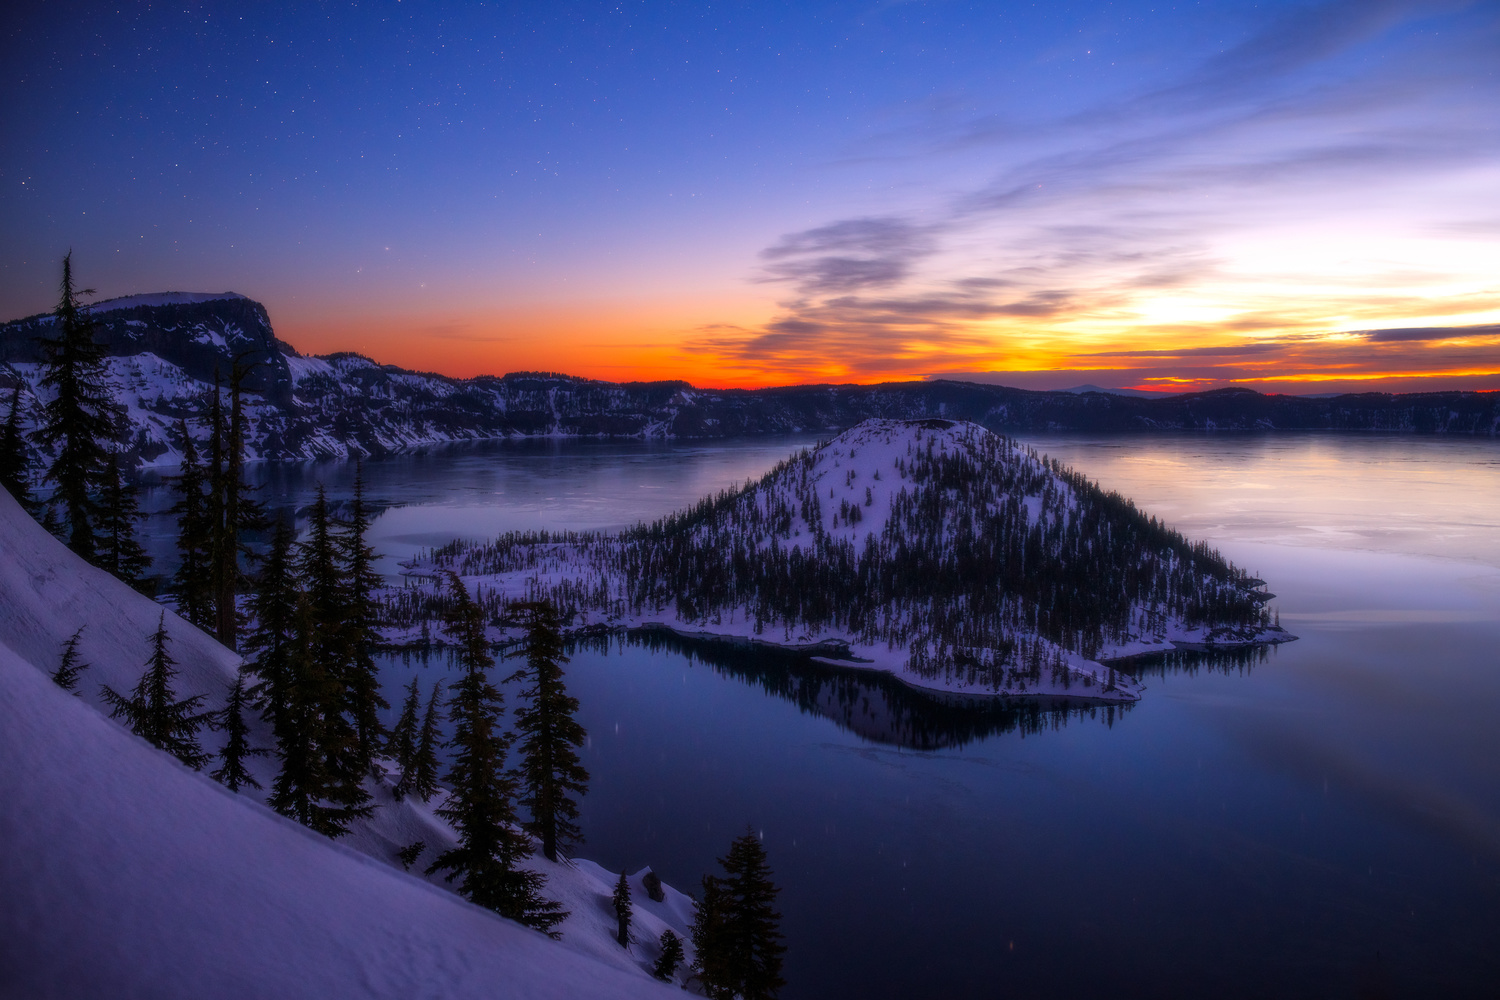 Crater Lake at Twilight by Daniel Gomez